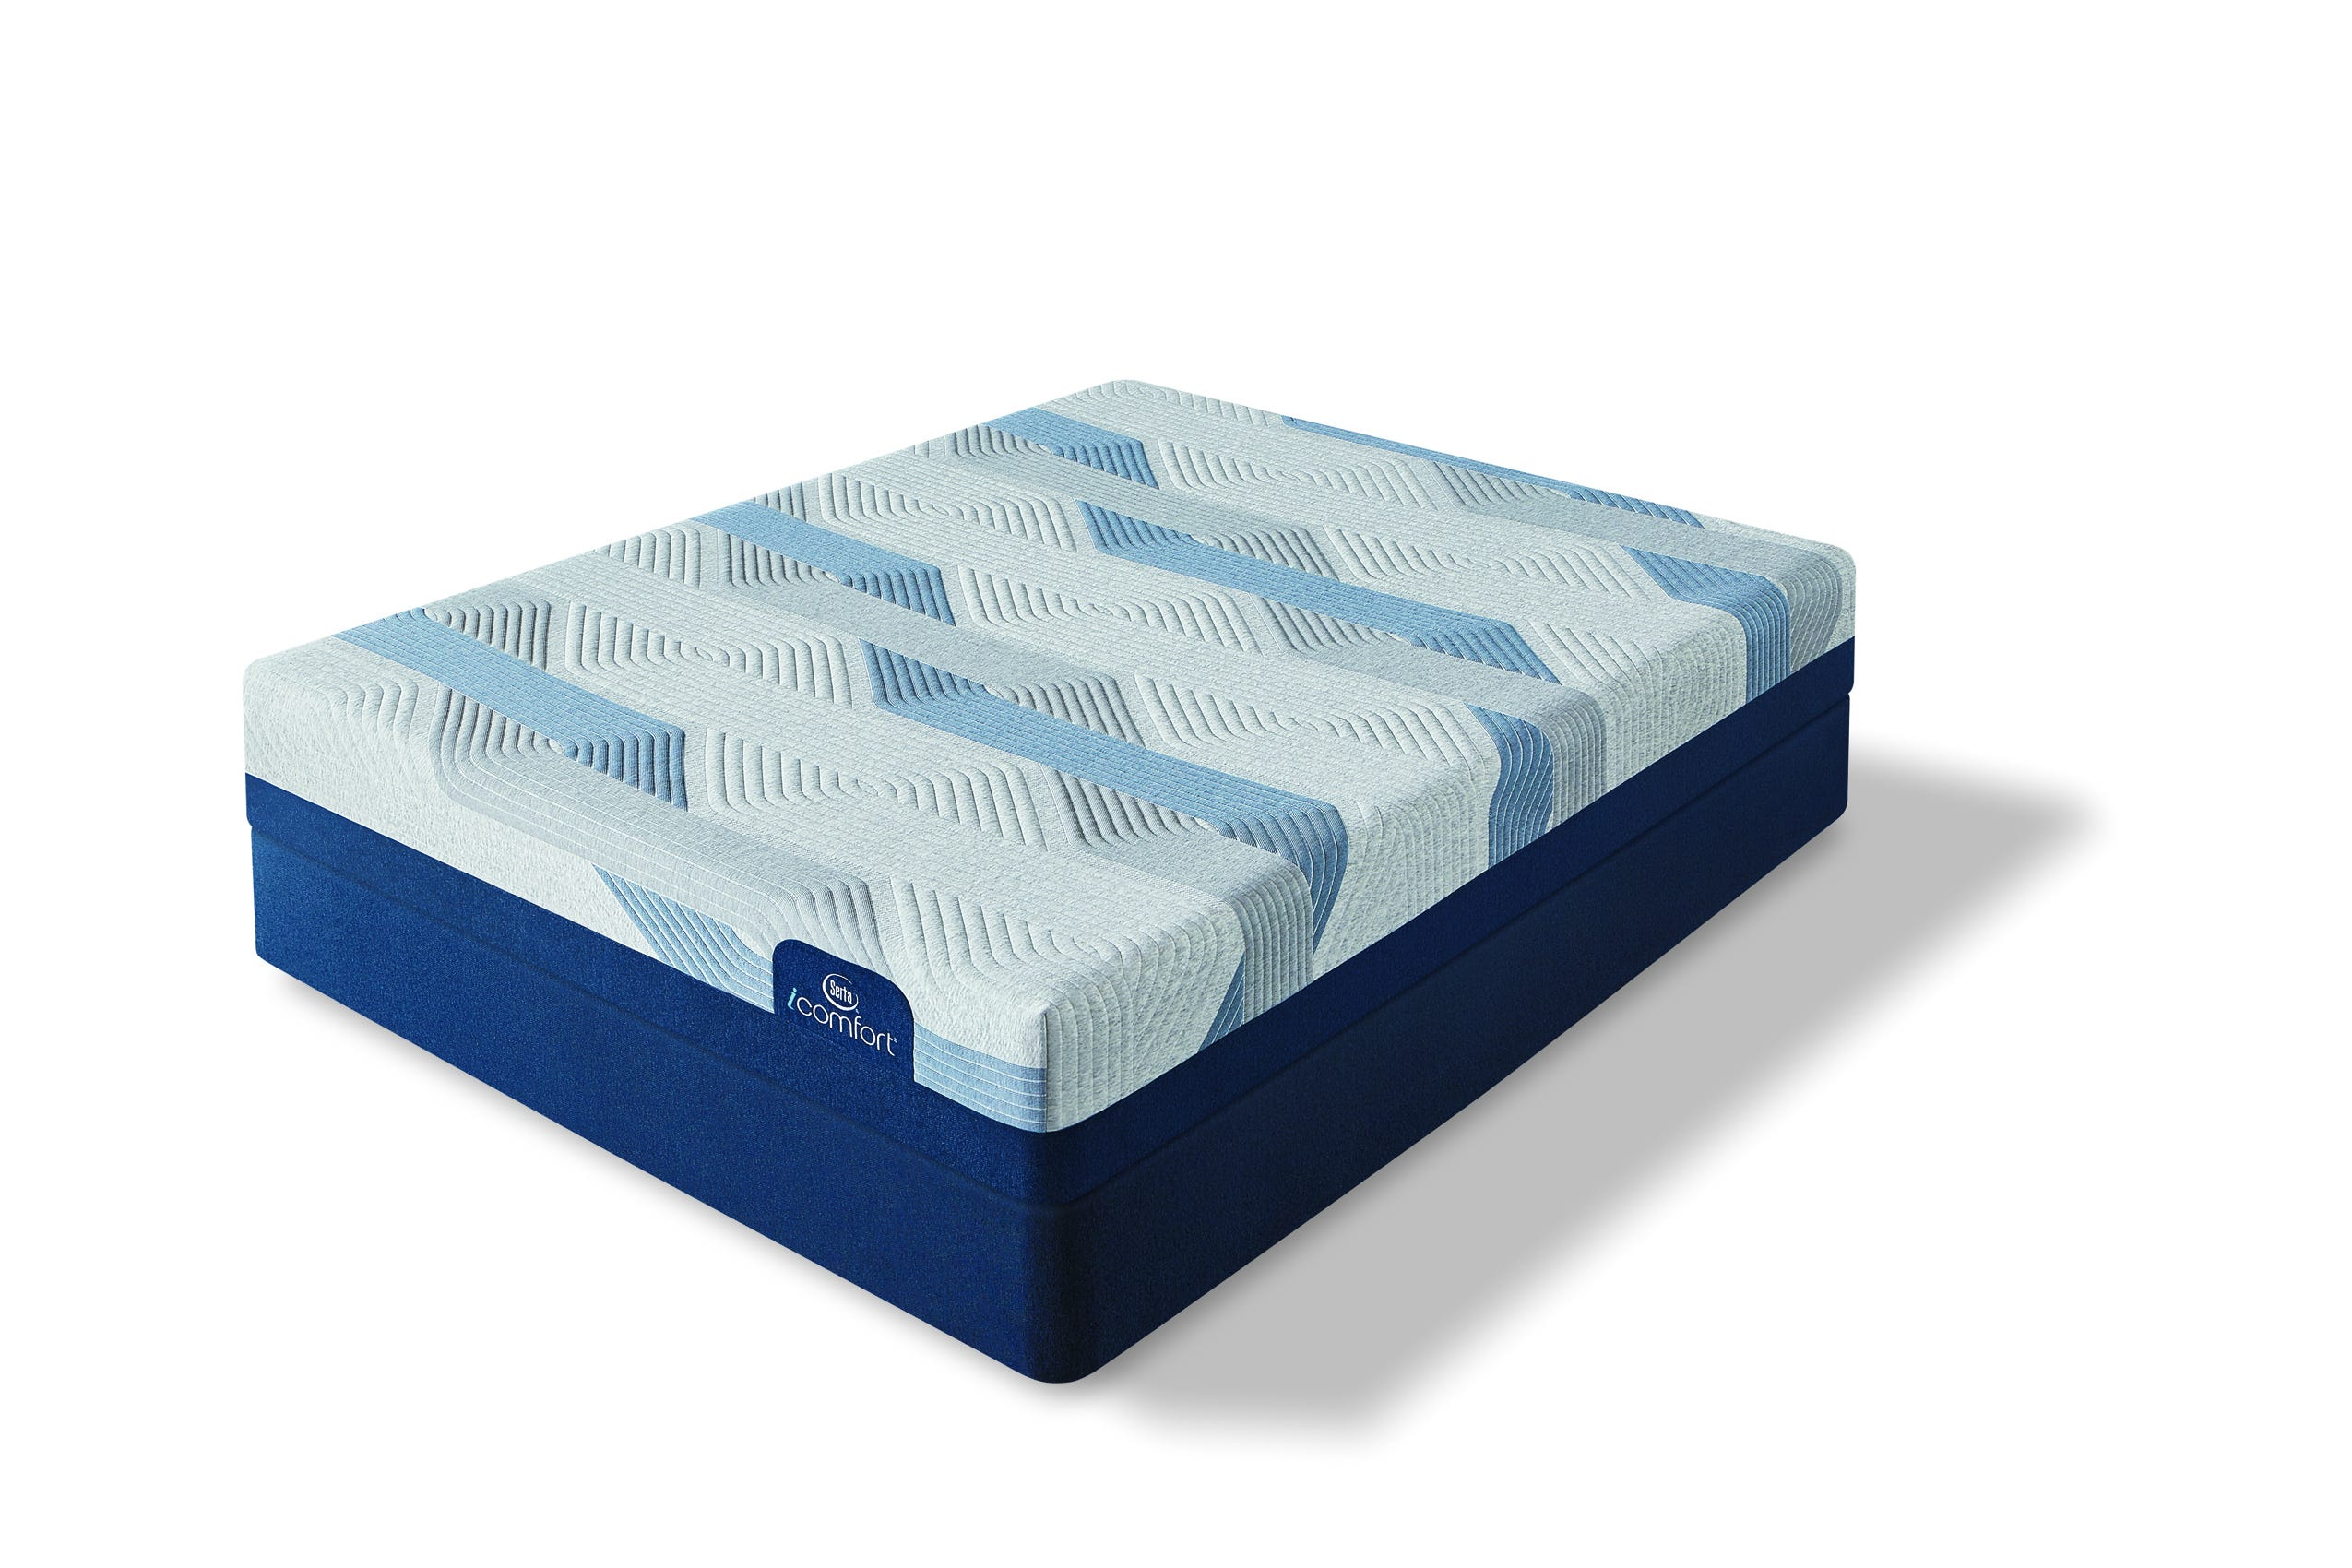 dressed firm mattress king jamison freight luxury presidential american